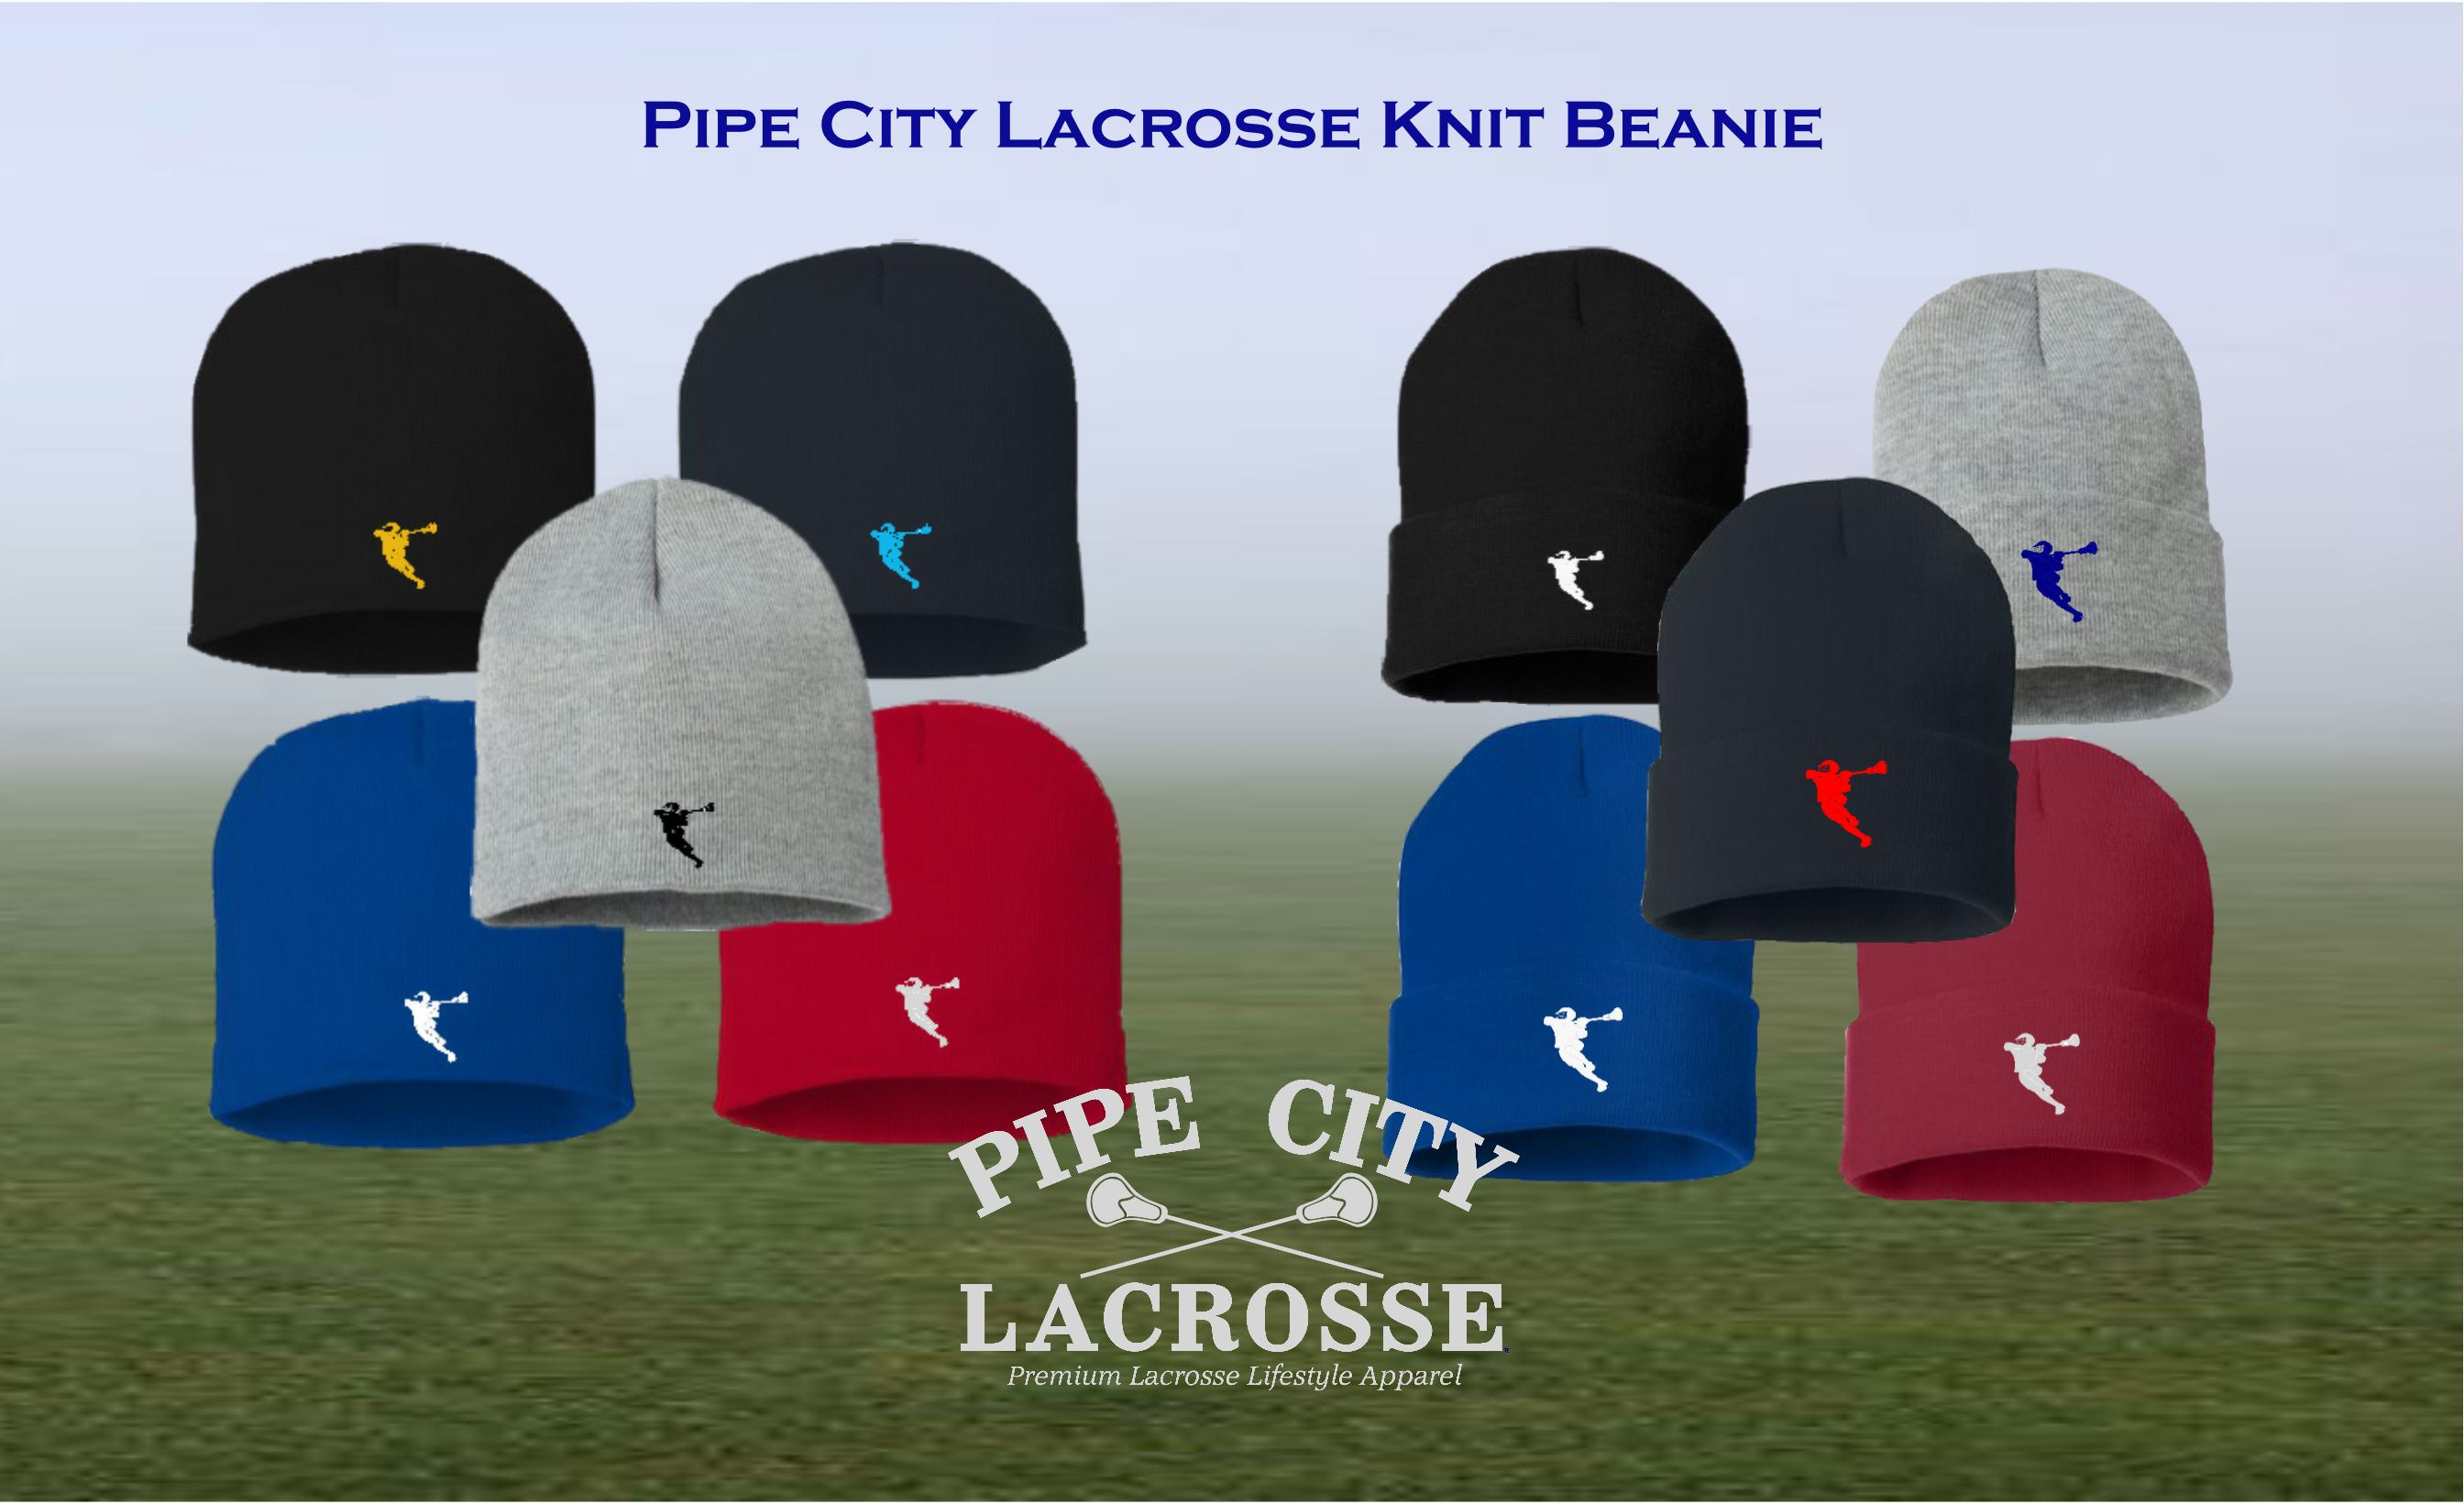 Knit Beanie Collection 2013